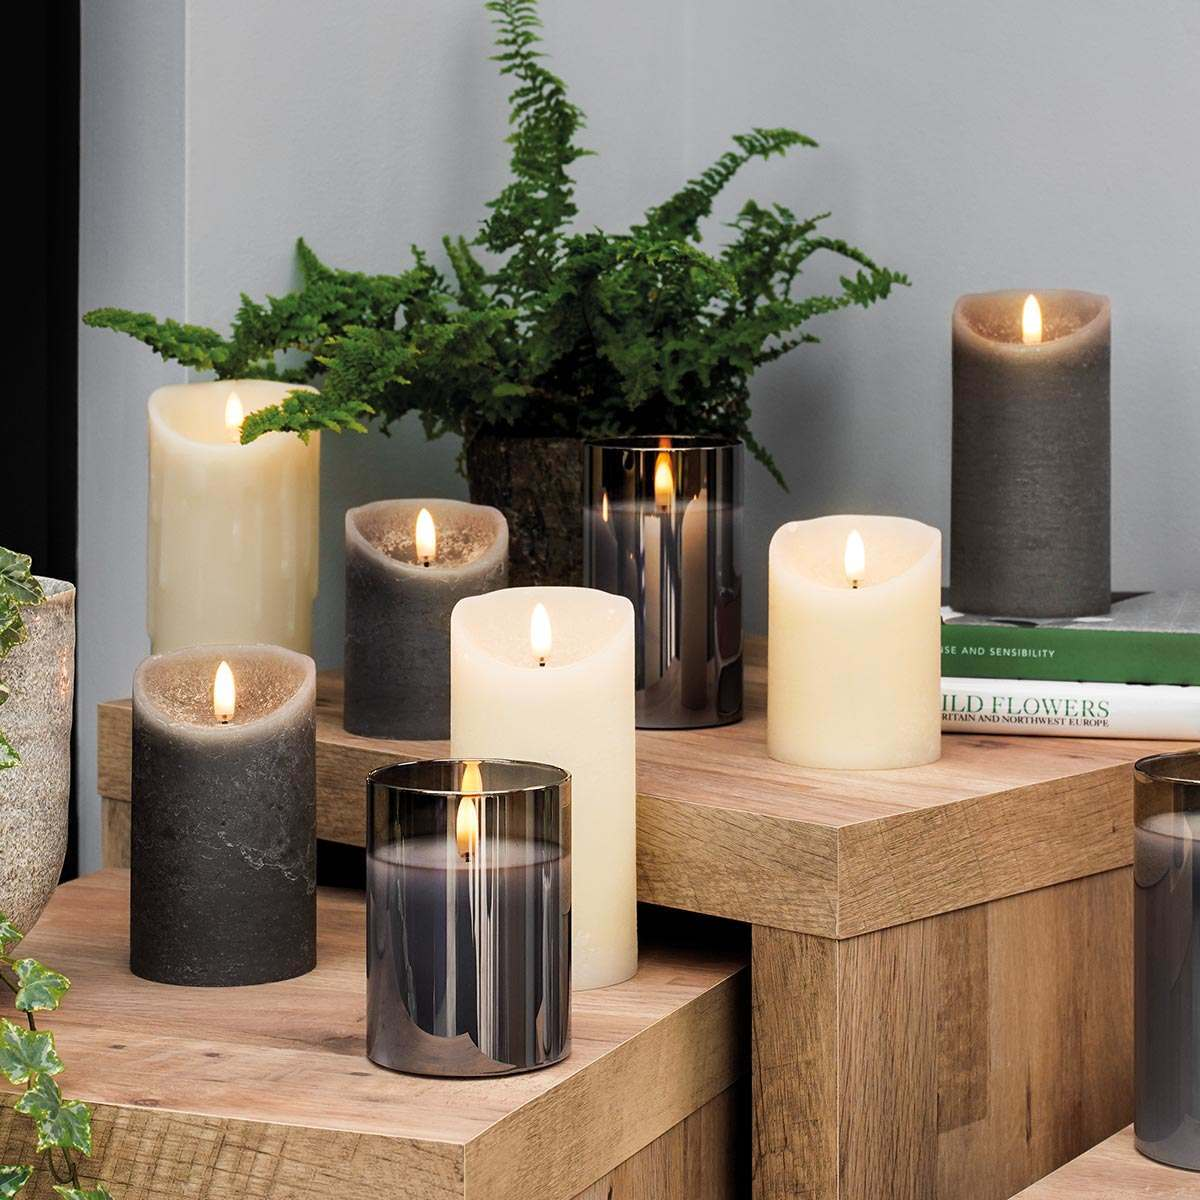 A collection of battery powered authentic flickering flame grey and cream candles, and smoked glass candle jars in the home